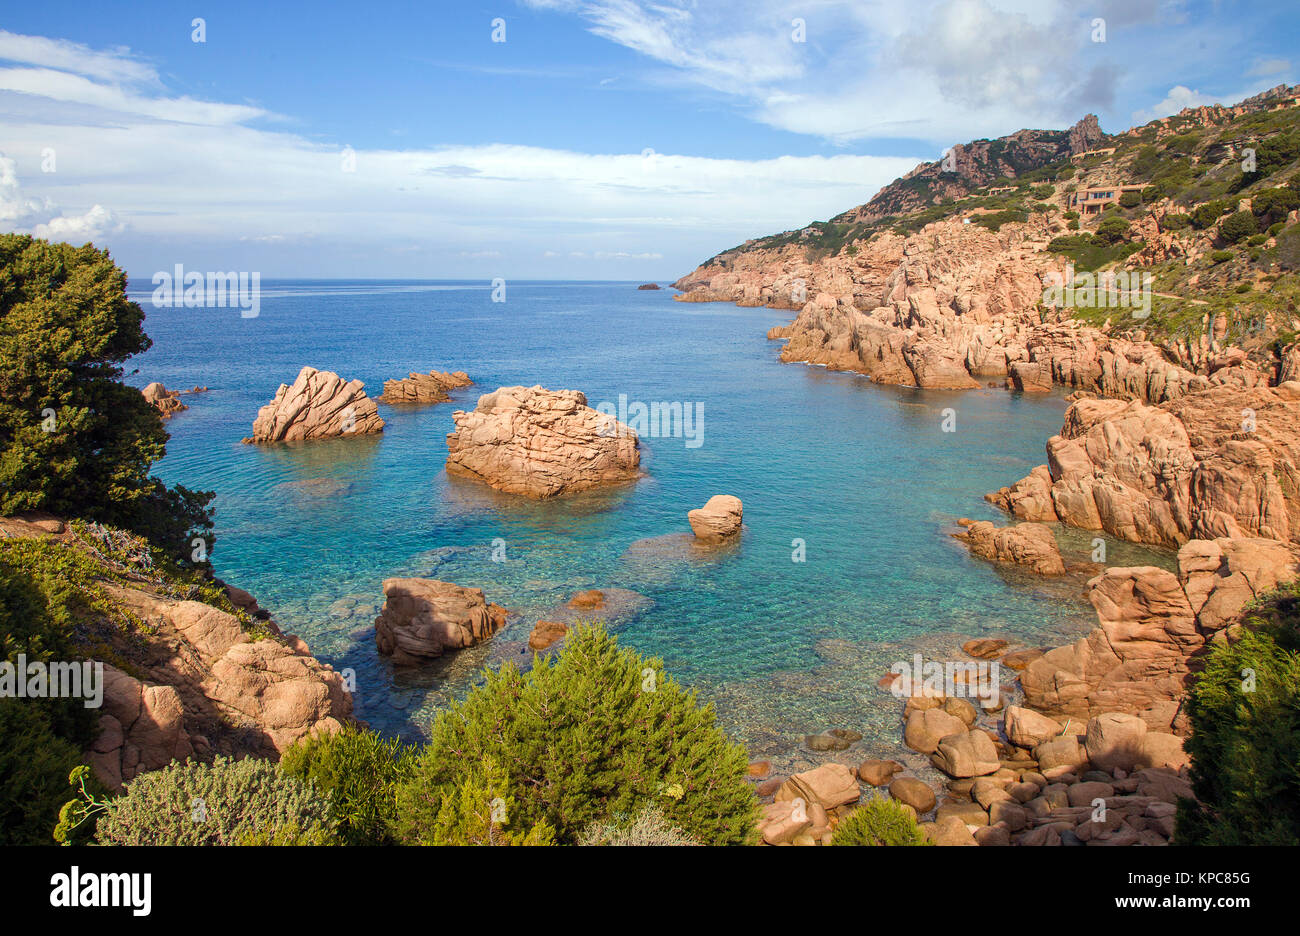 Porphyry rocks, coast landscape at Costa Paradiso, Sardinia, Italy, Mediterranean  sea, Europe Stock Photo